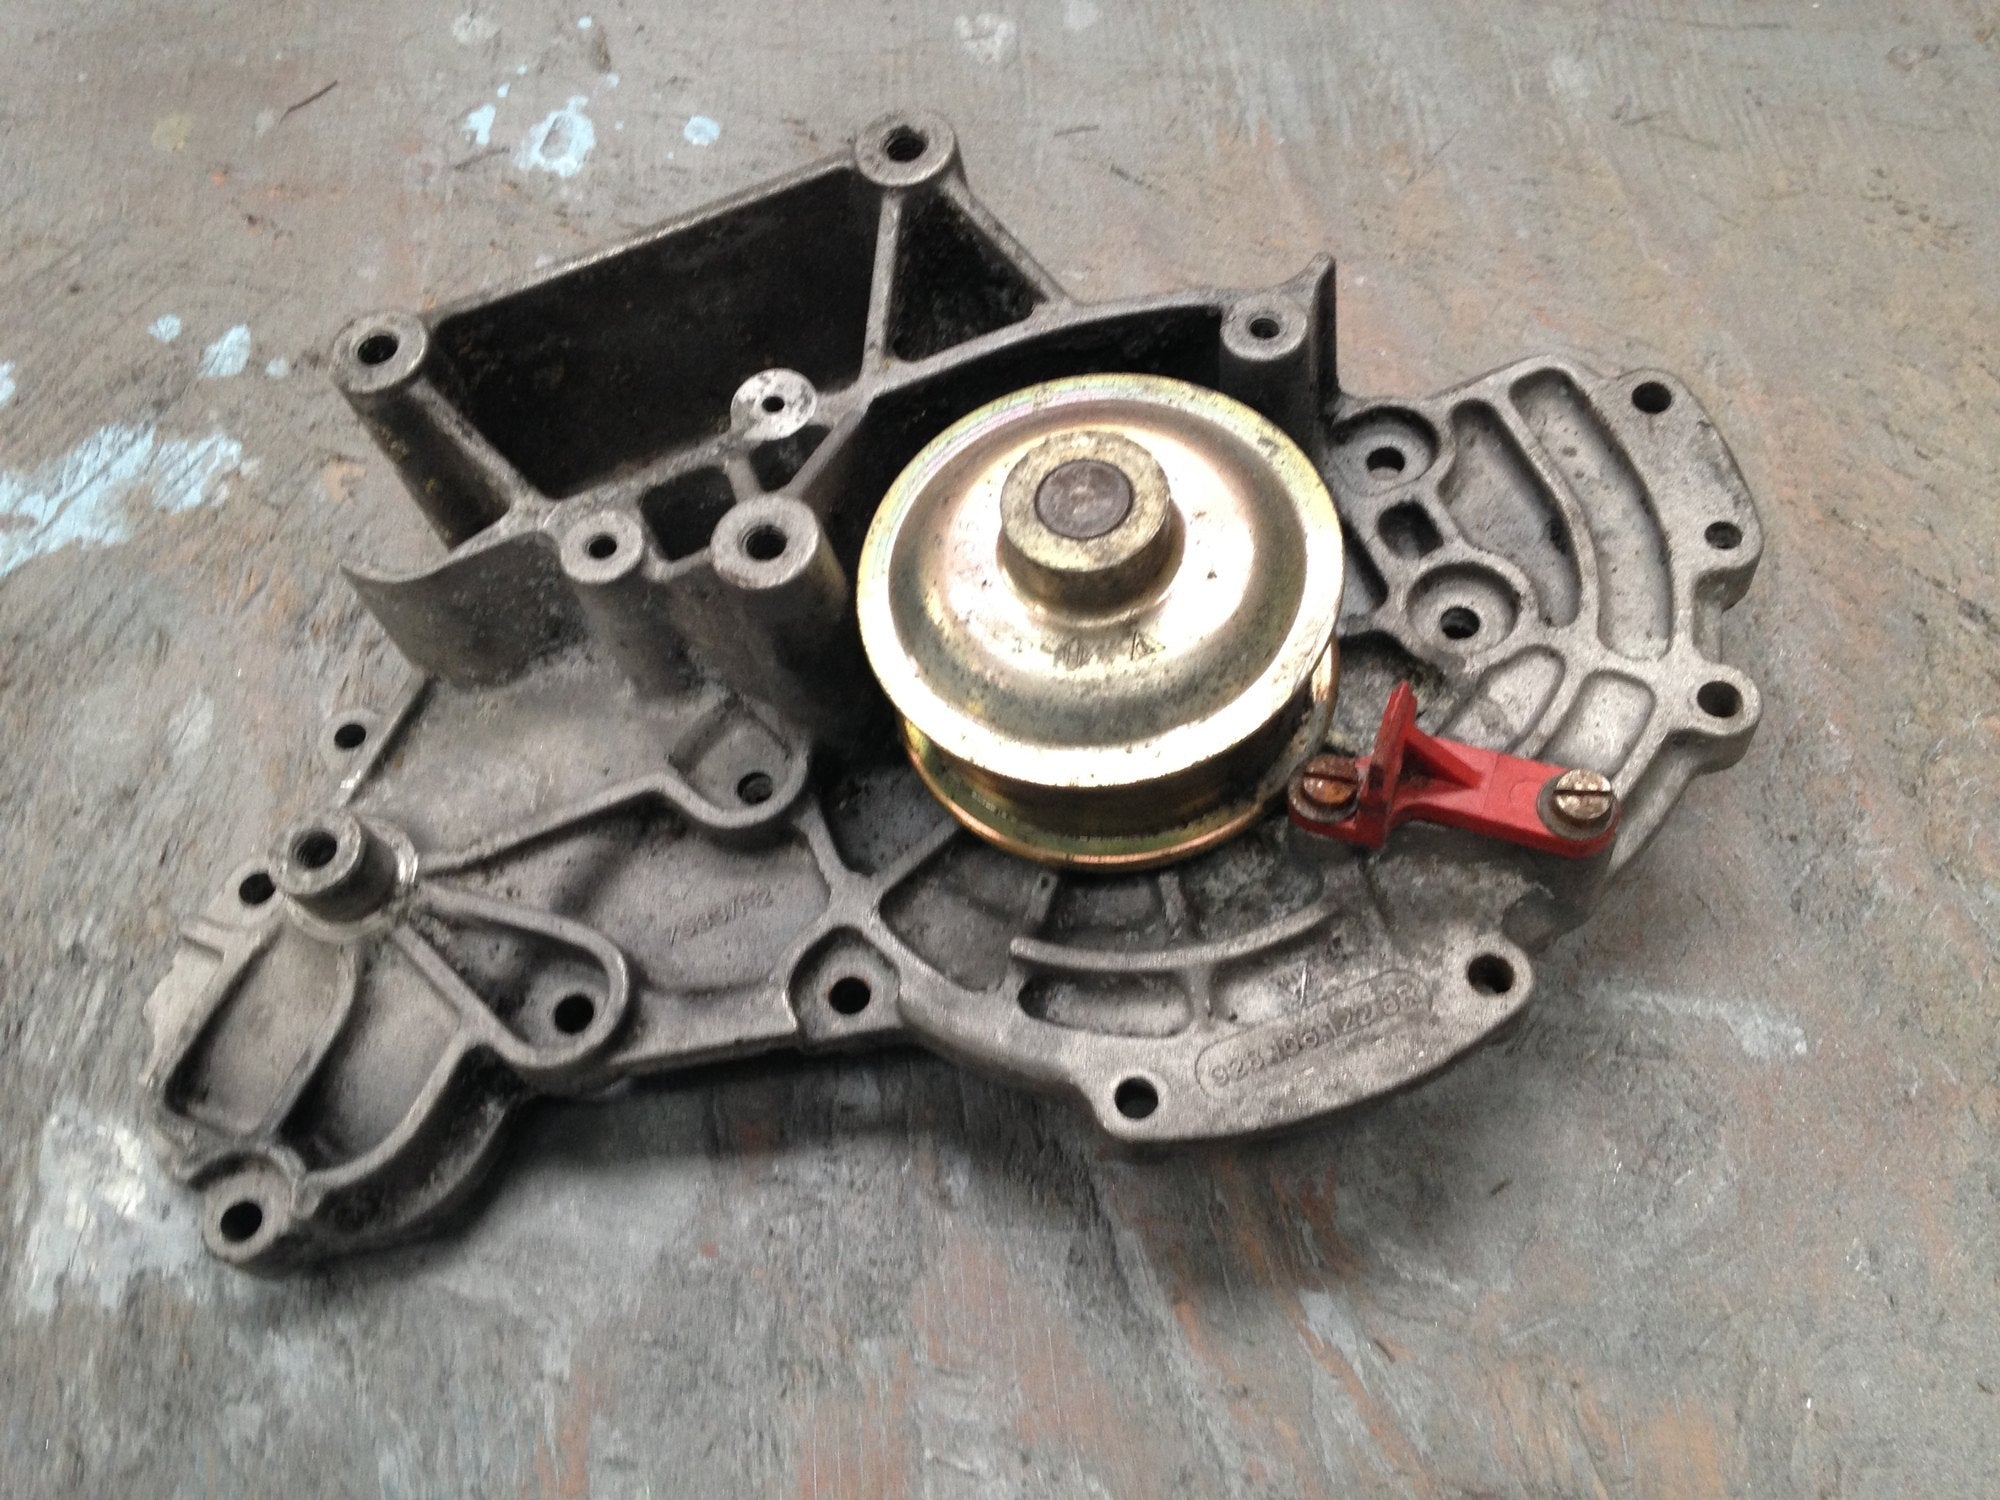 Porsche 928 water pump 928 106 122 8r - Woolies Workshop - Porsche 924 944 spares